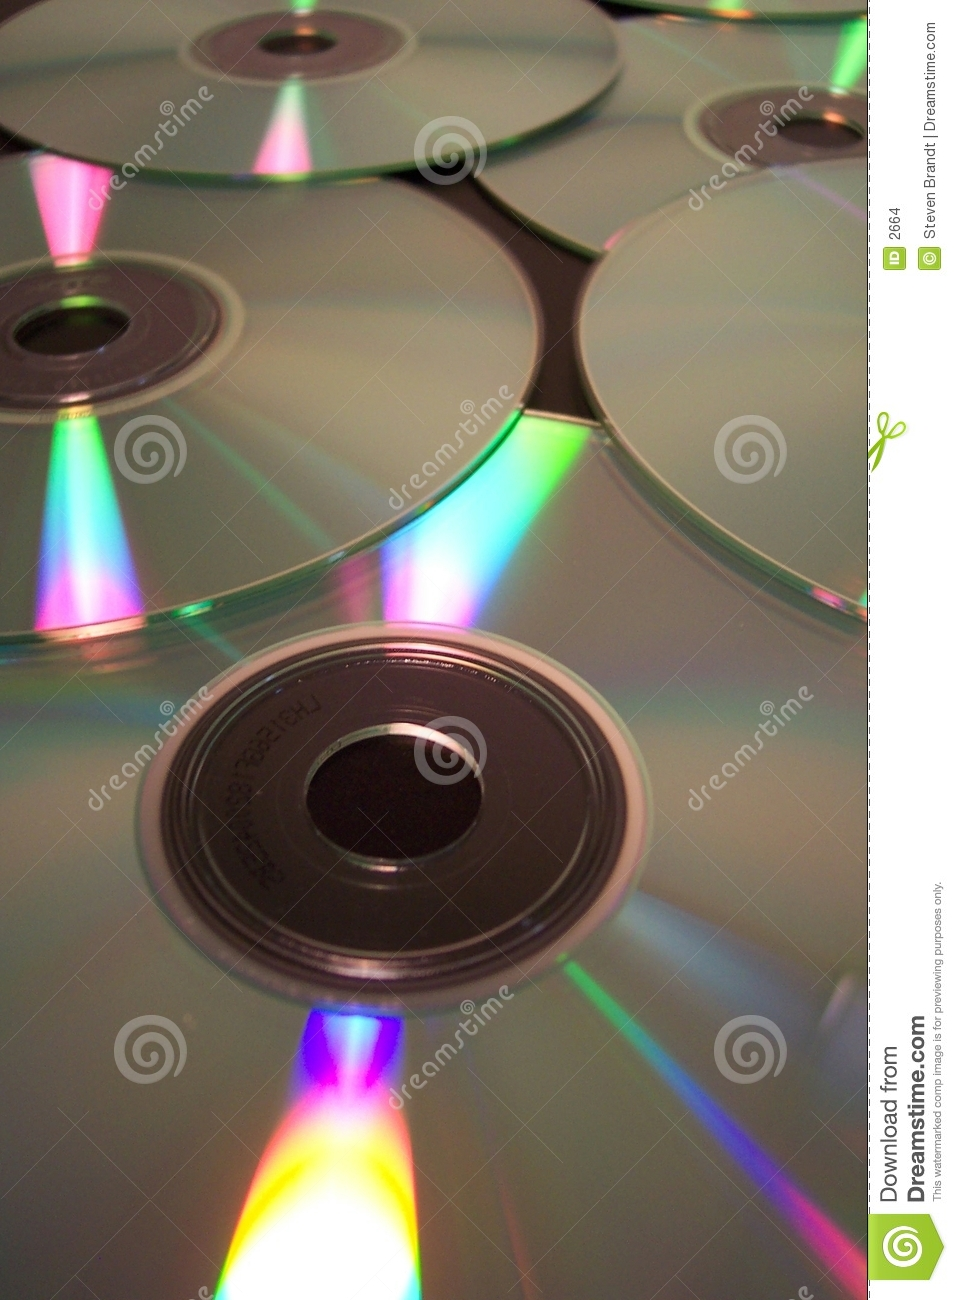 Compacts-disc